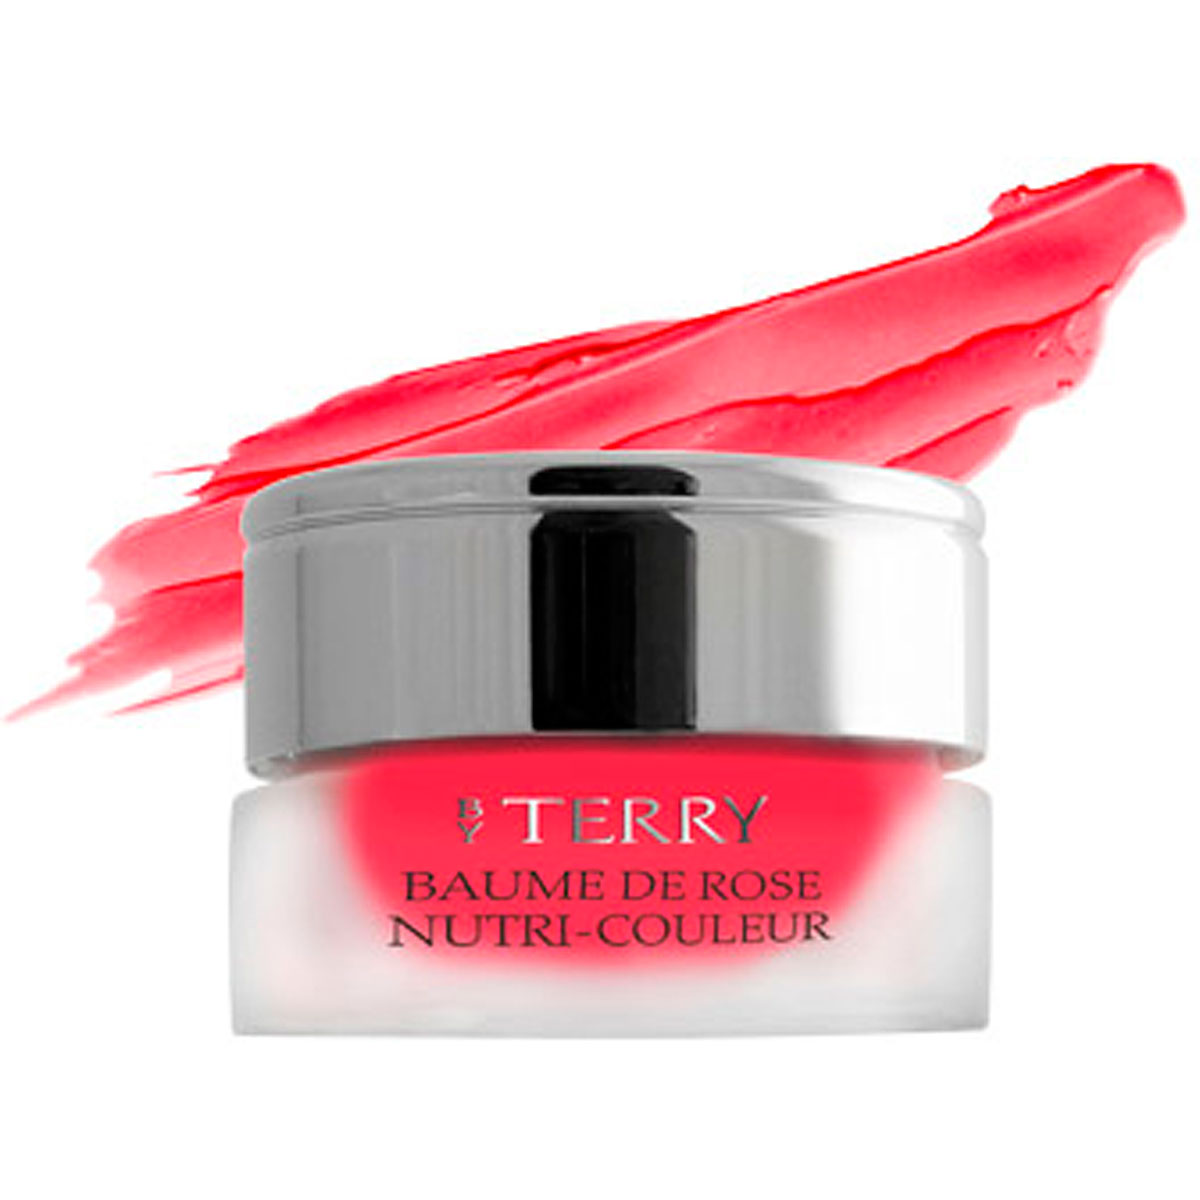 By Terry Makeup for Women, Baume De Rose - Tinted Lip Balm - N 3 Cherry Bomb, 2019, 7 gr